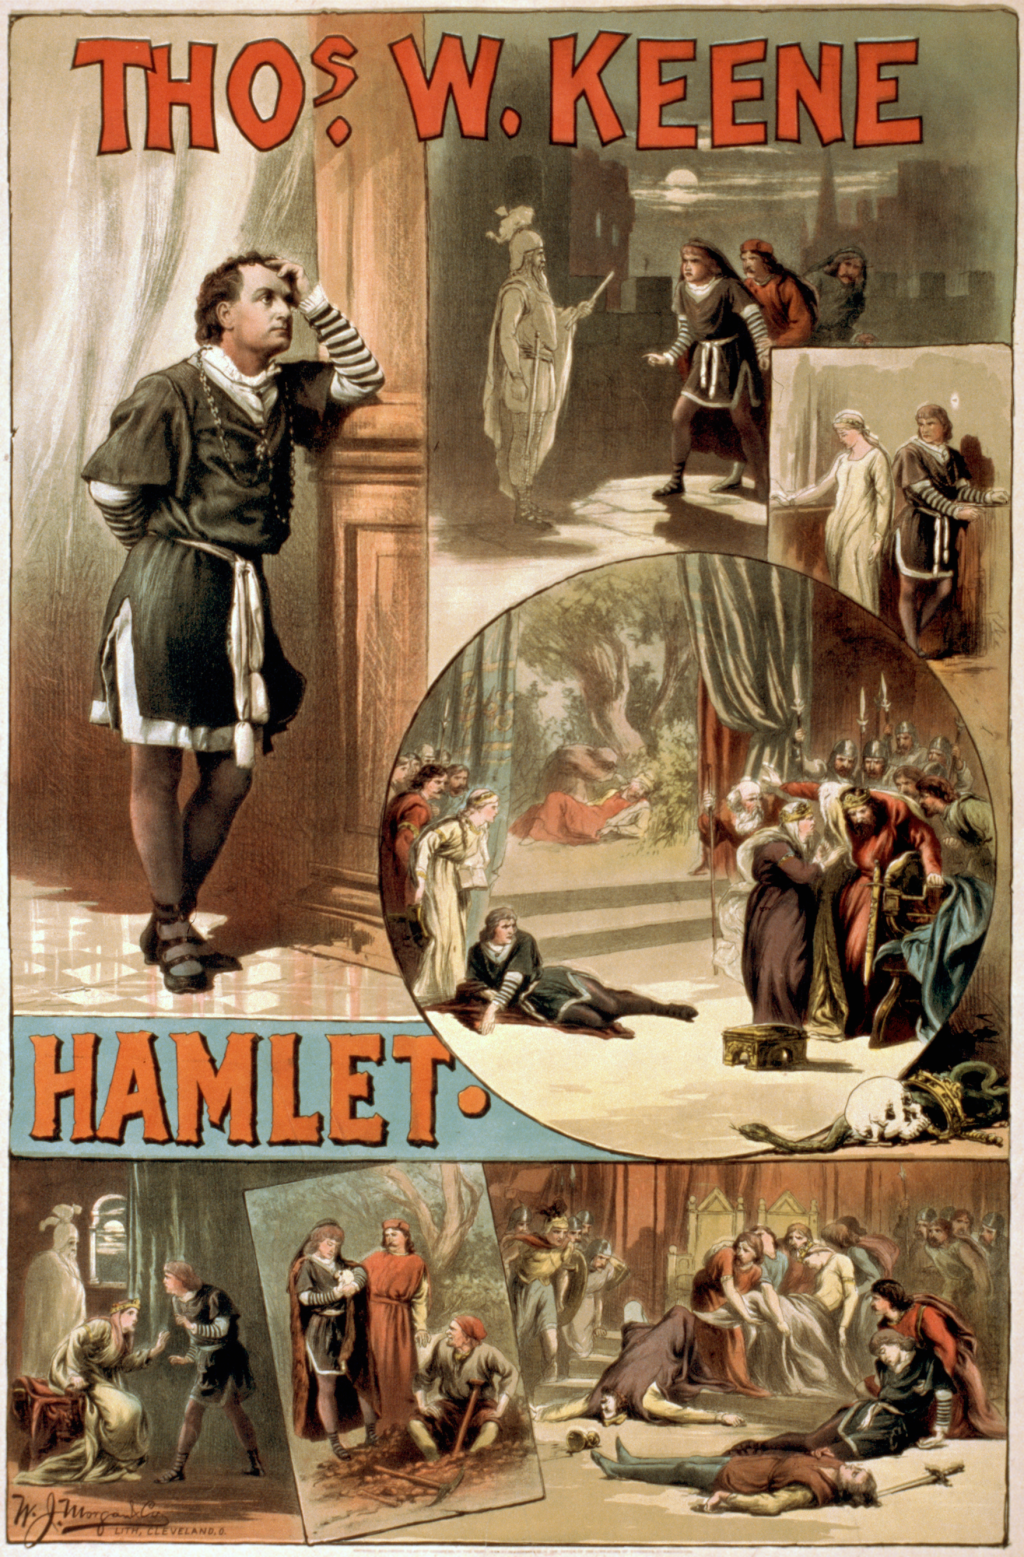 hamlet time is of the essence procrastination writework a circa 1884 poster for william shakespeare s hamlet starring thos w keene